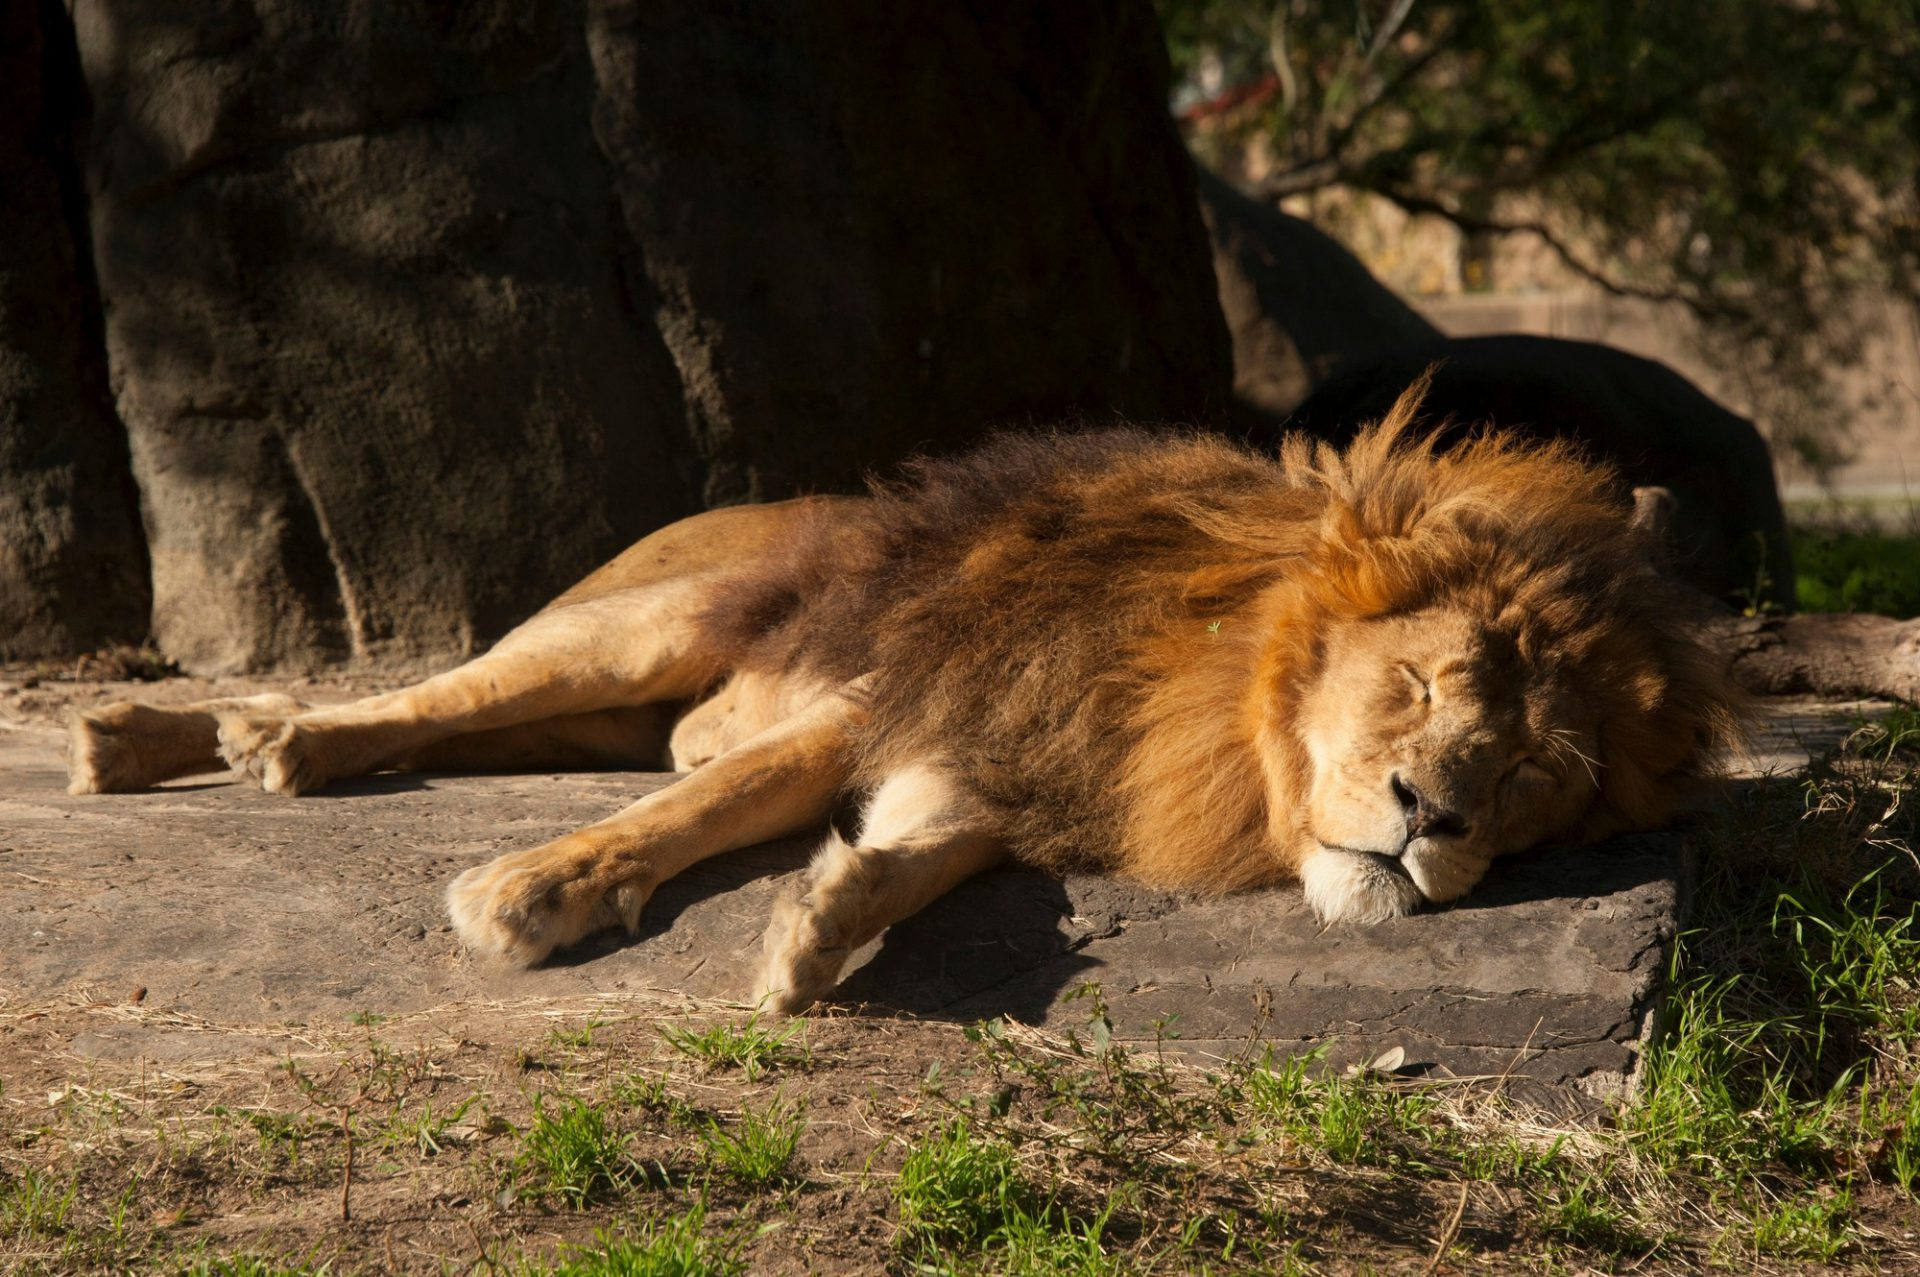 Photo: A male African lion (Panthera leo) naps in the sun at the Houston Zoo.